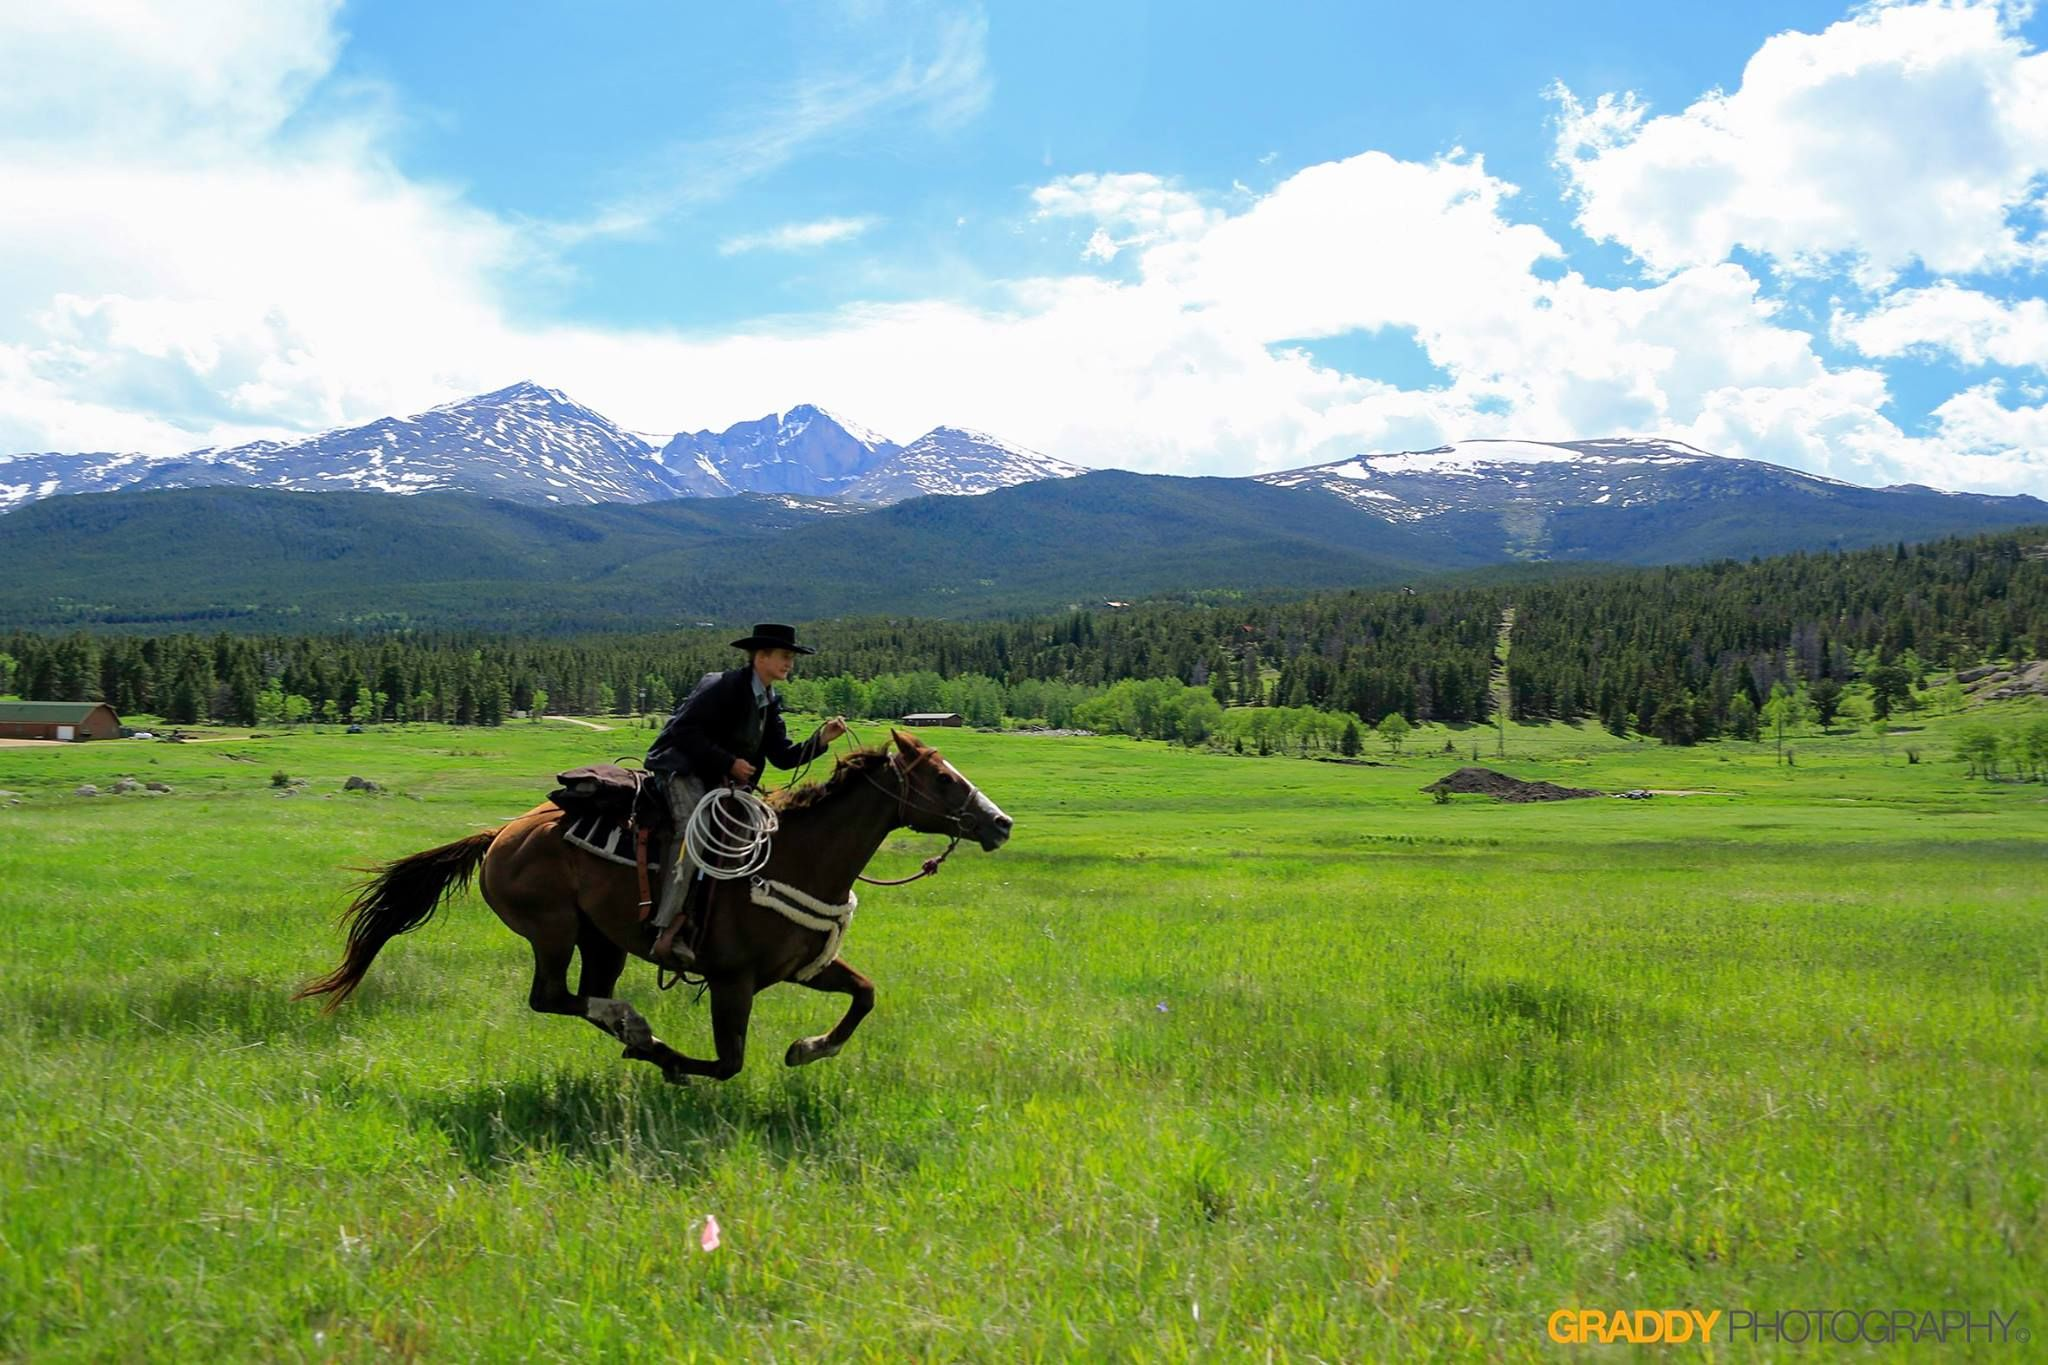 Graddy Photography Wind River Ranch httpwwwduderanch